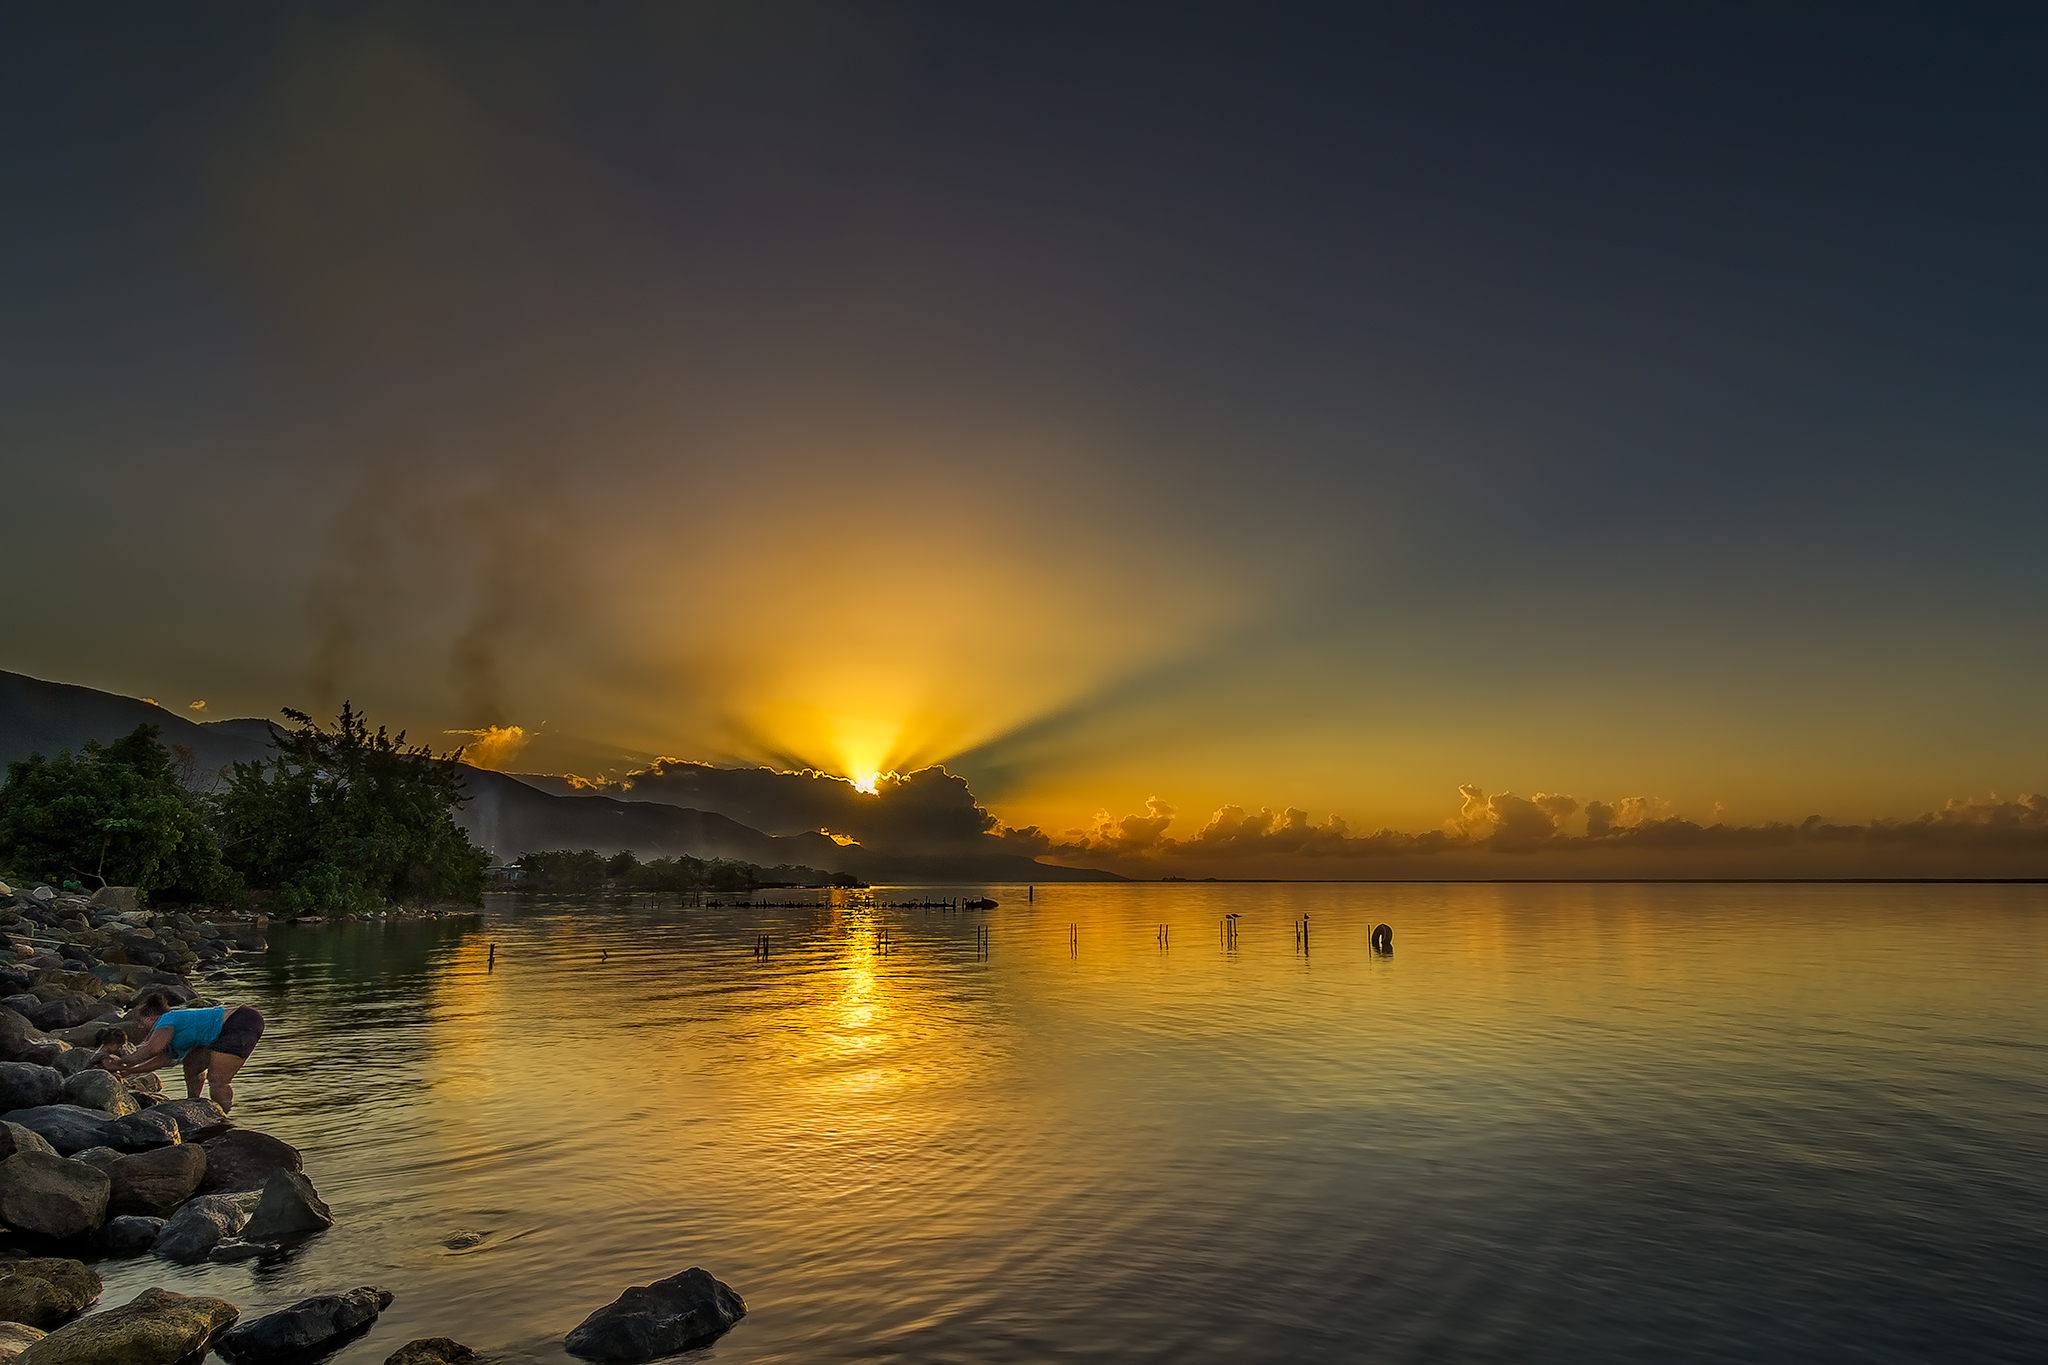 A mother gives her child a bath in the Caribbean Sea as the Sun rises in East Kingston, Jamaica.